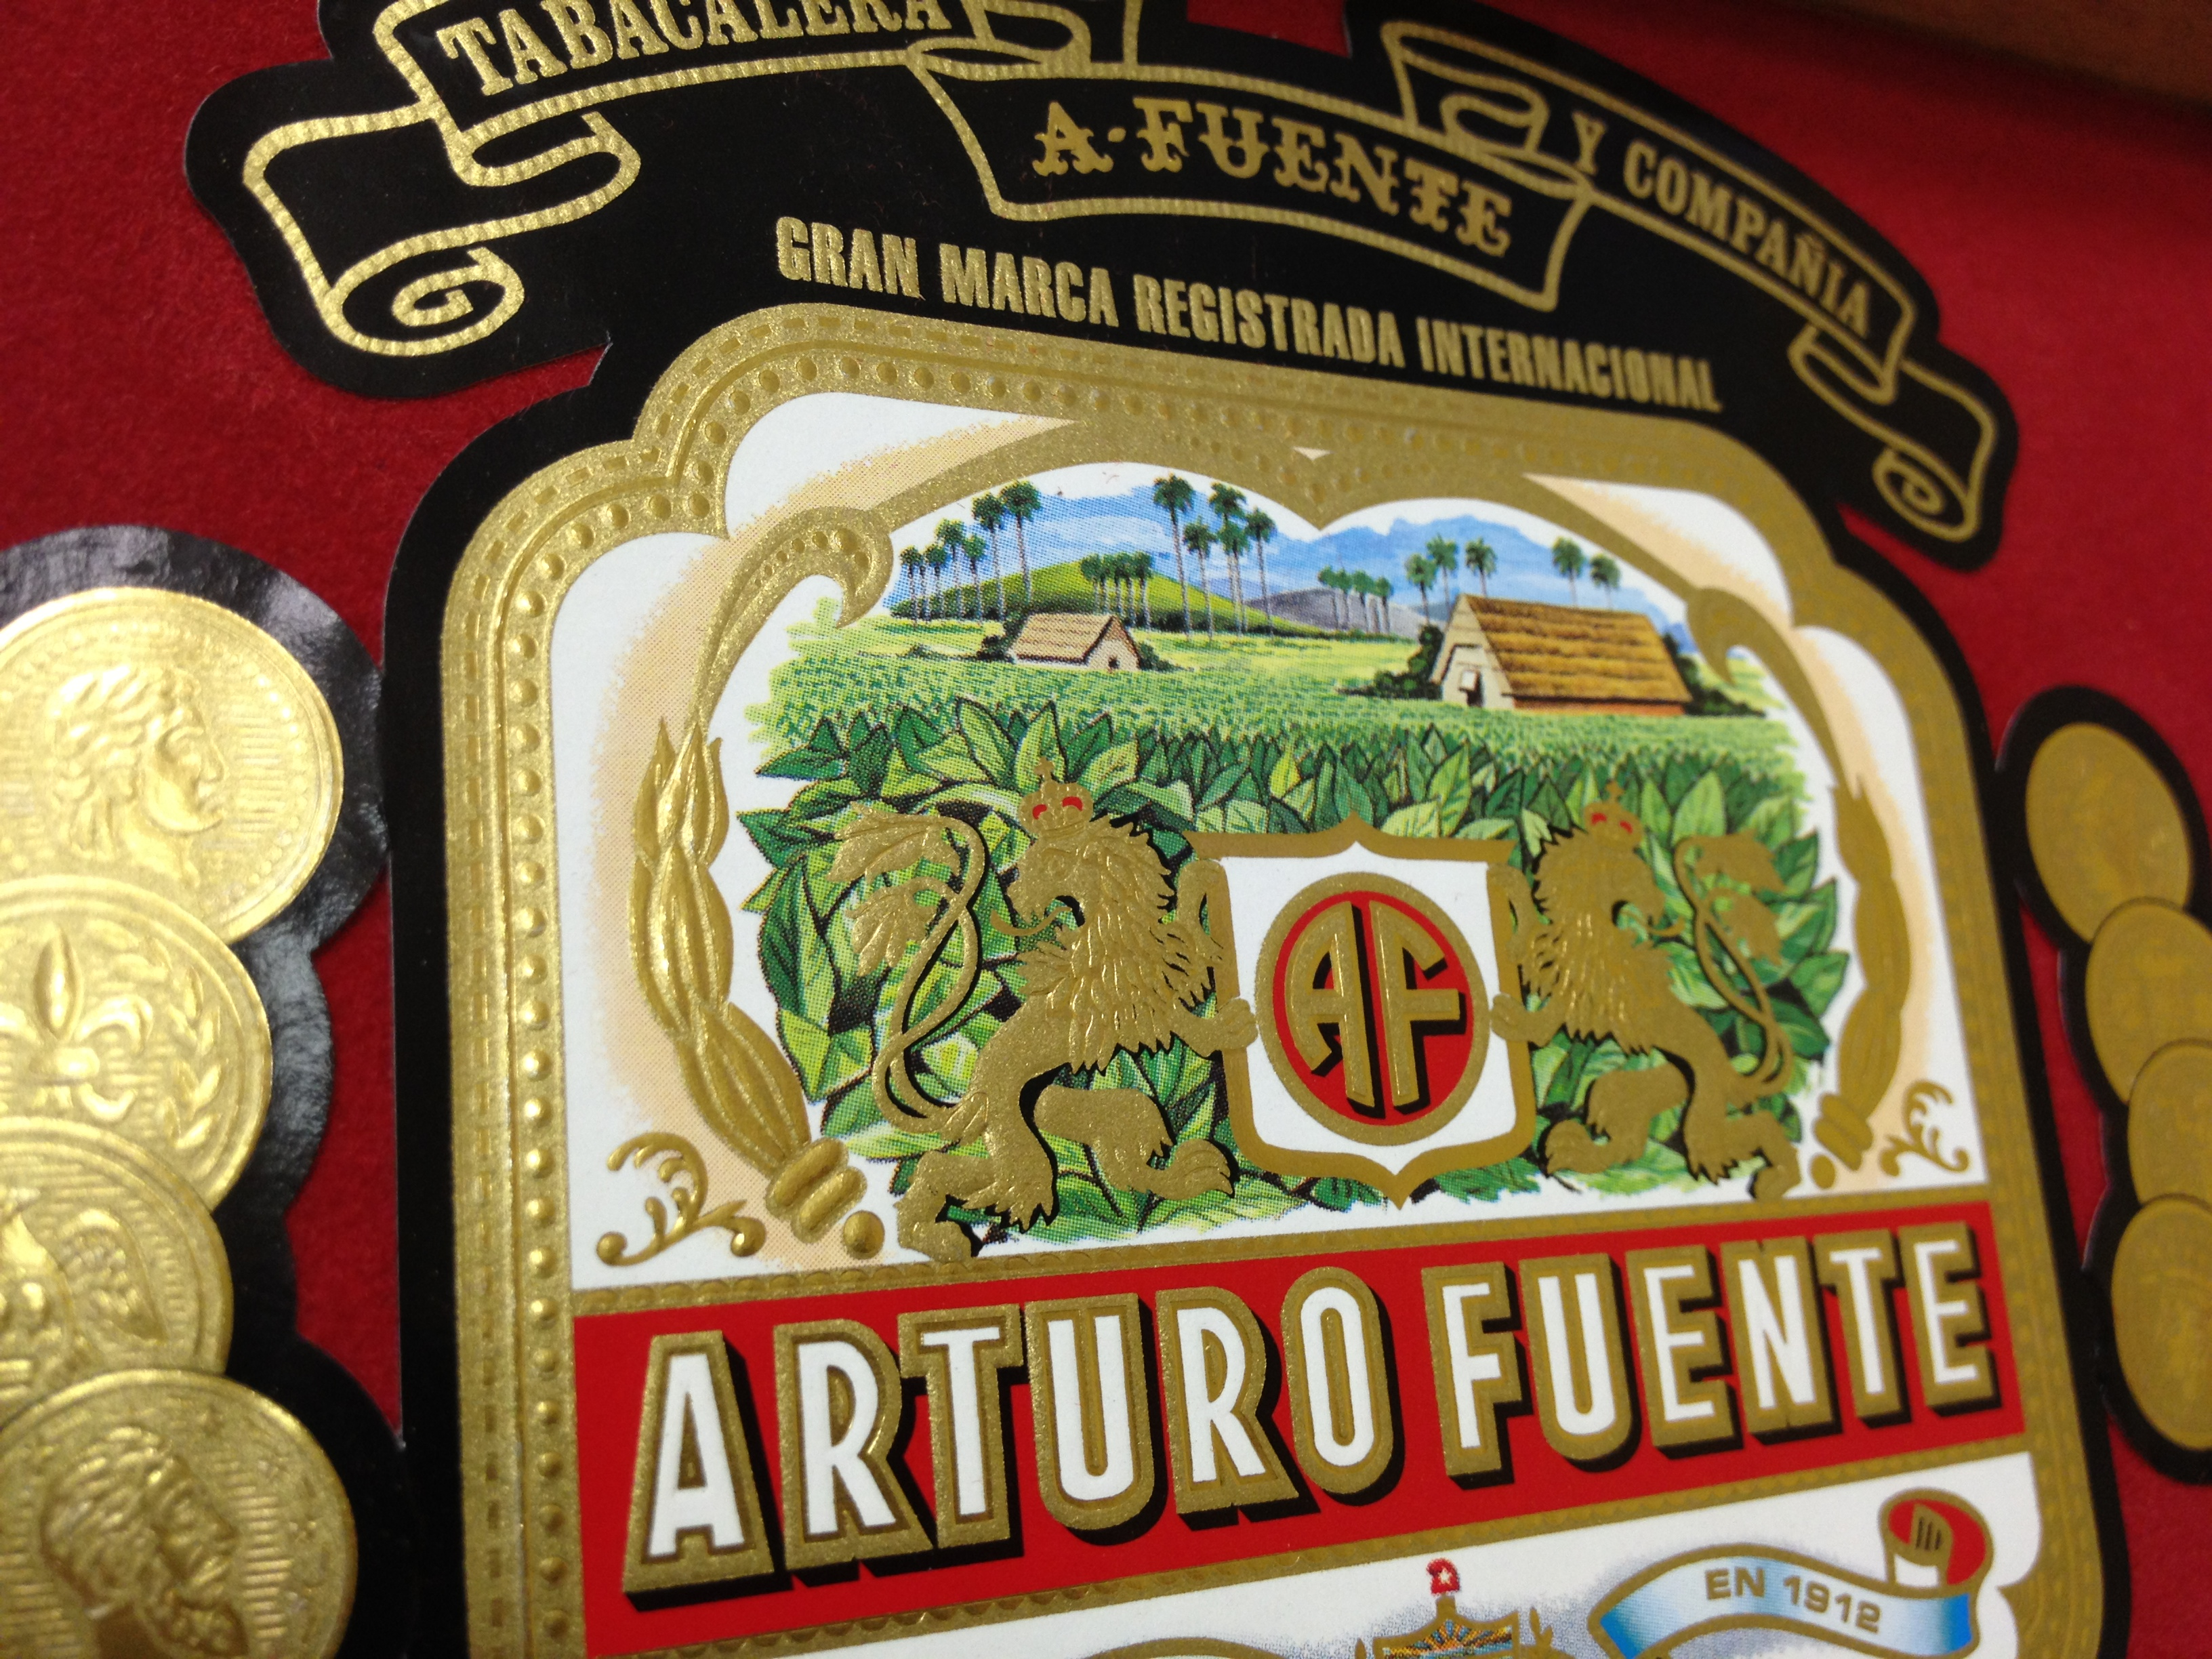 Arturo Fuente Hemingway Short Story - Box of 25 image